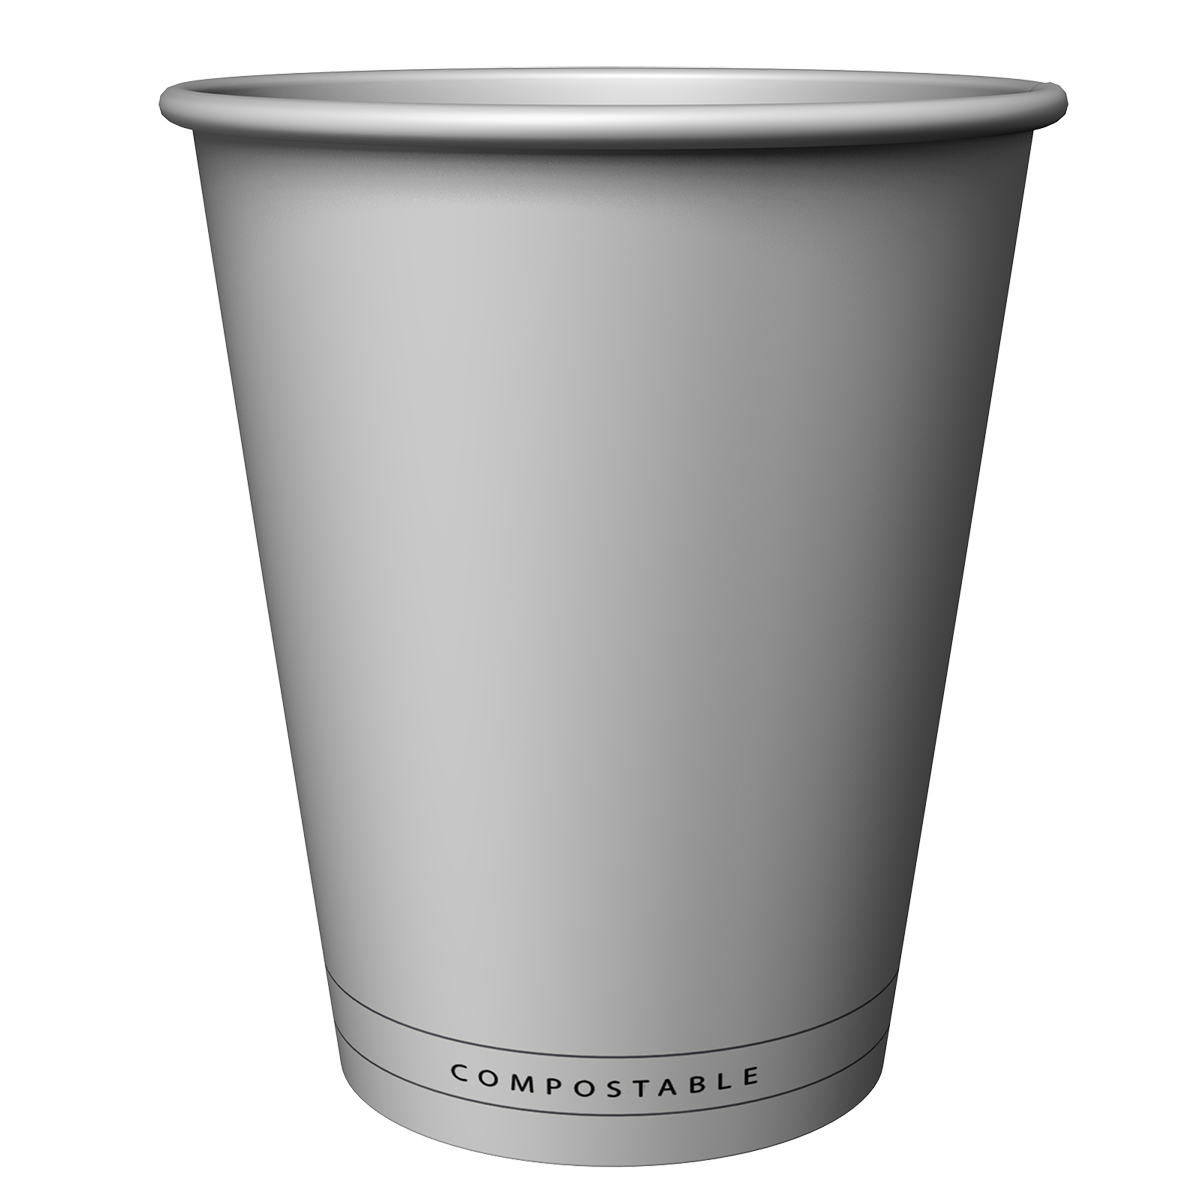 Compostable-12oz-front